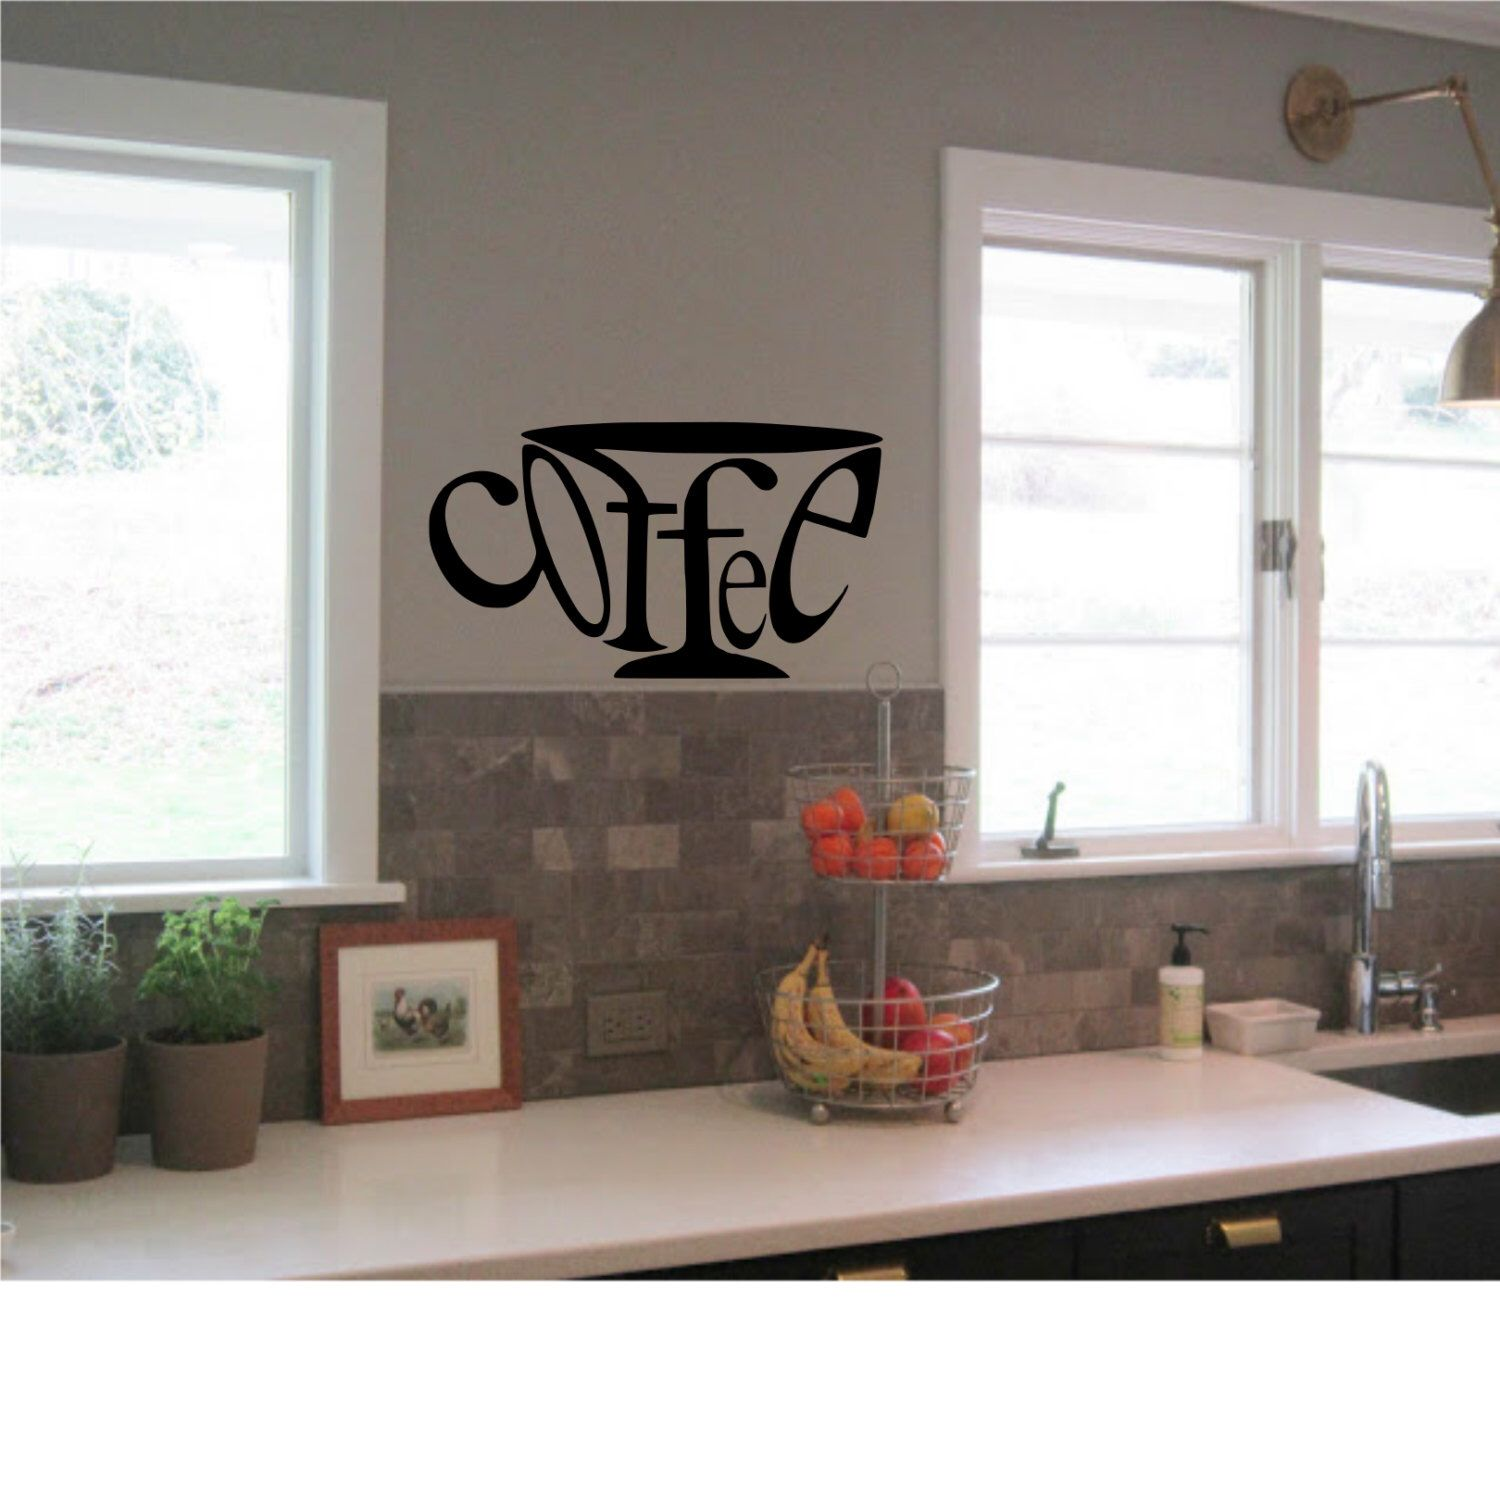 Coffee Wall Decal Kitchen Wall Art High Quality Wall Decal - Custom vinyl wall decals coffee